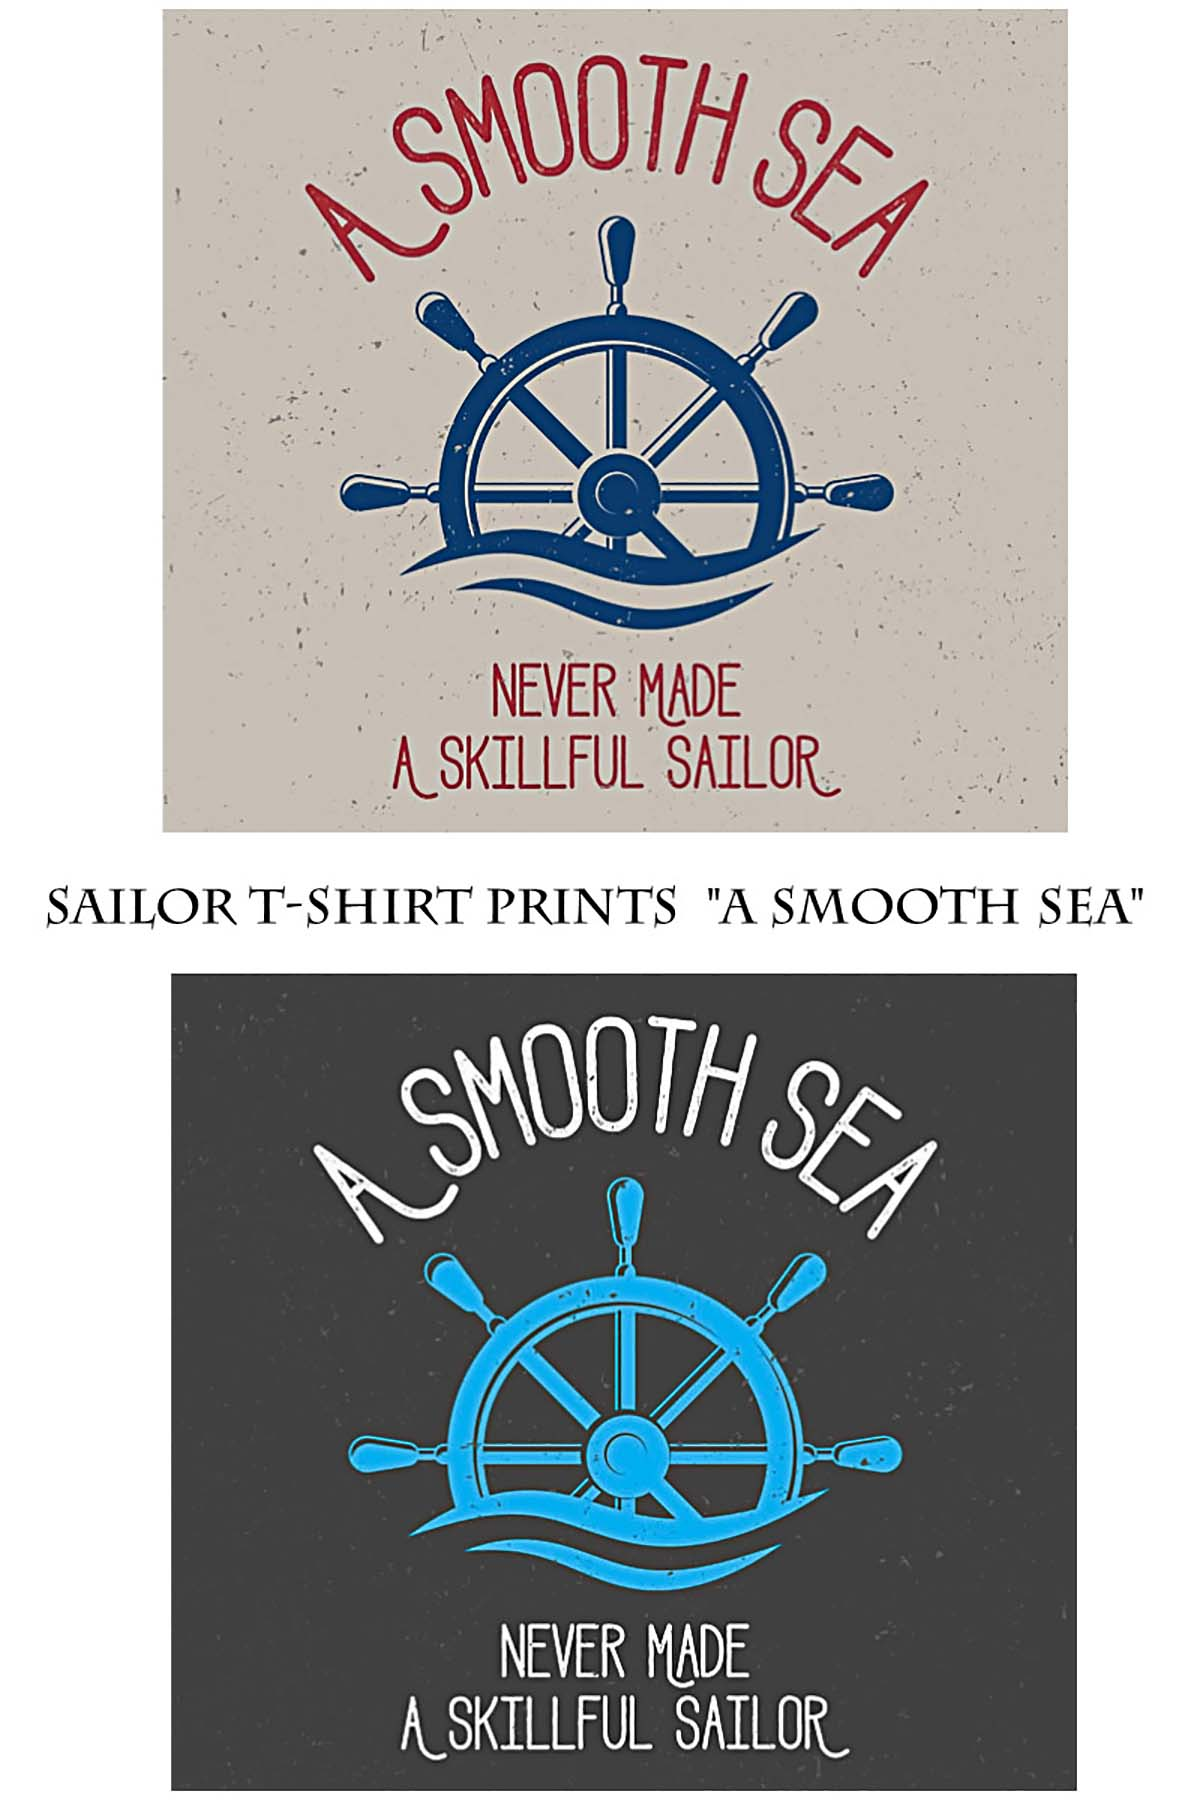 Sailor t-shirt print with steering wheel free vector